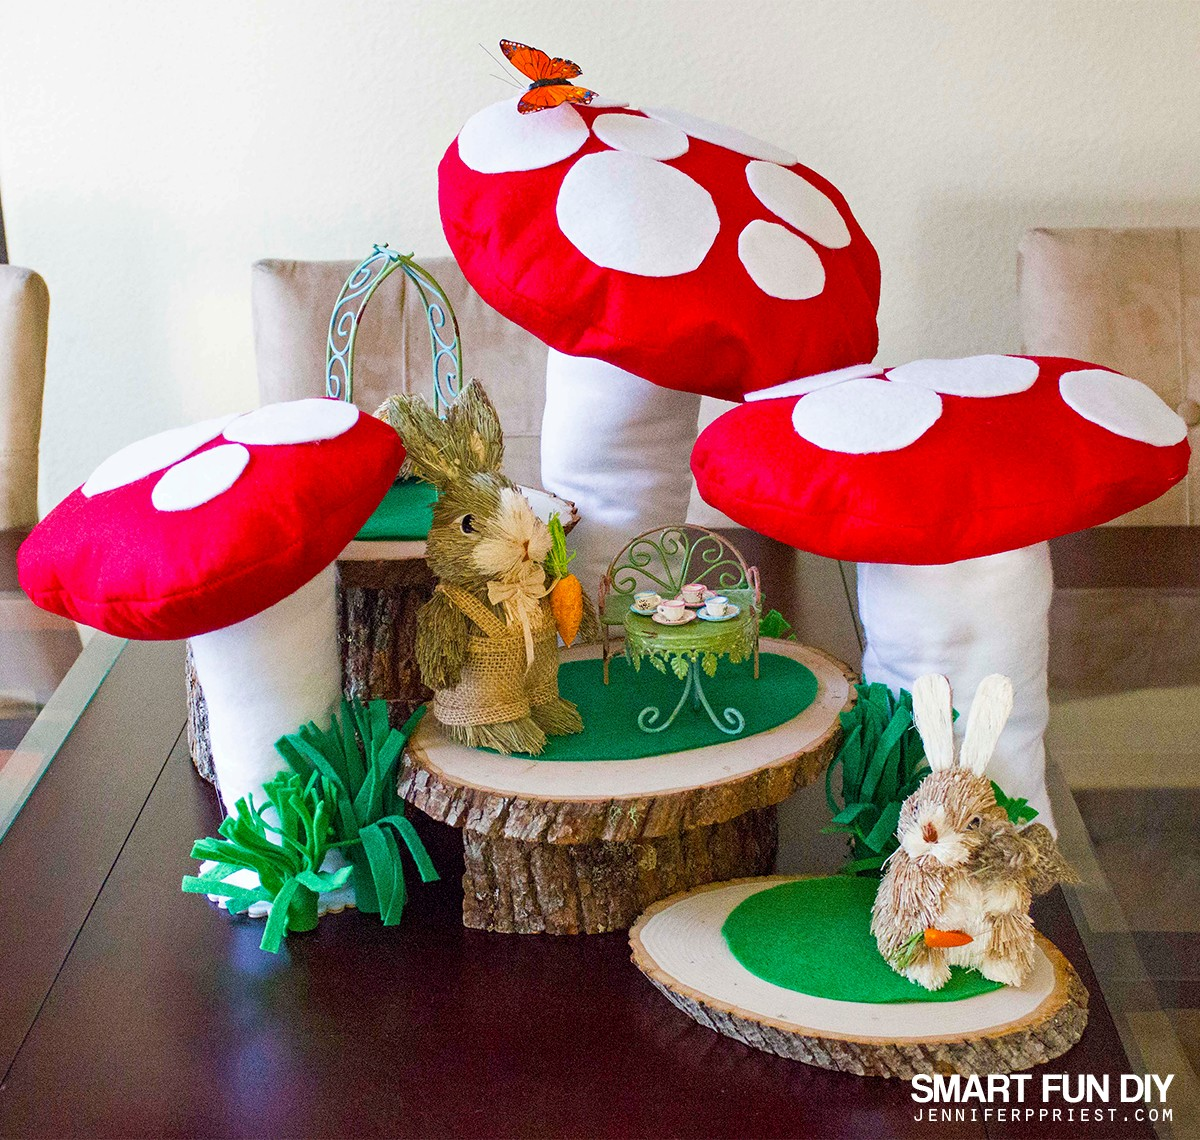 Best Diy Fairy Garden With Giant Mushrooms This Month